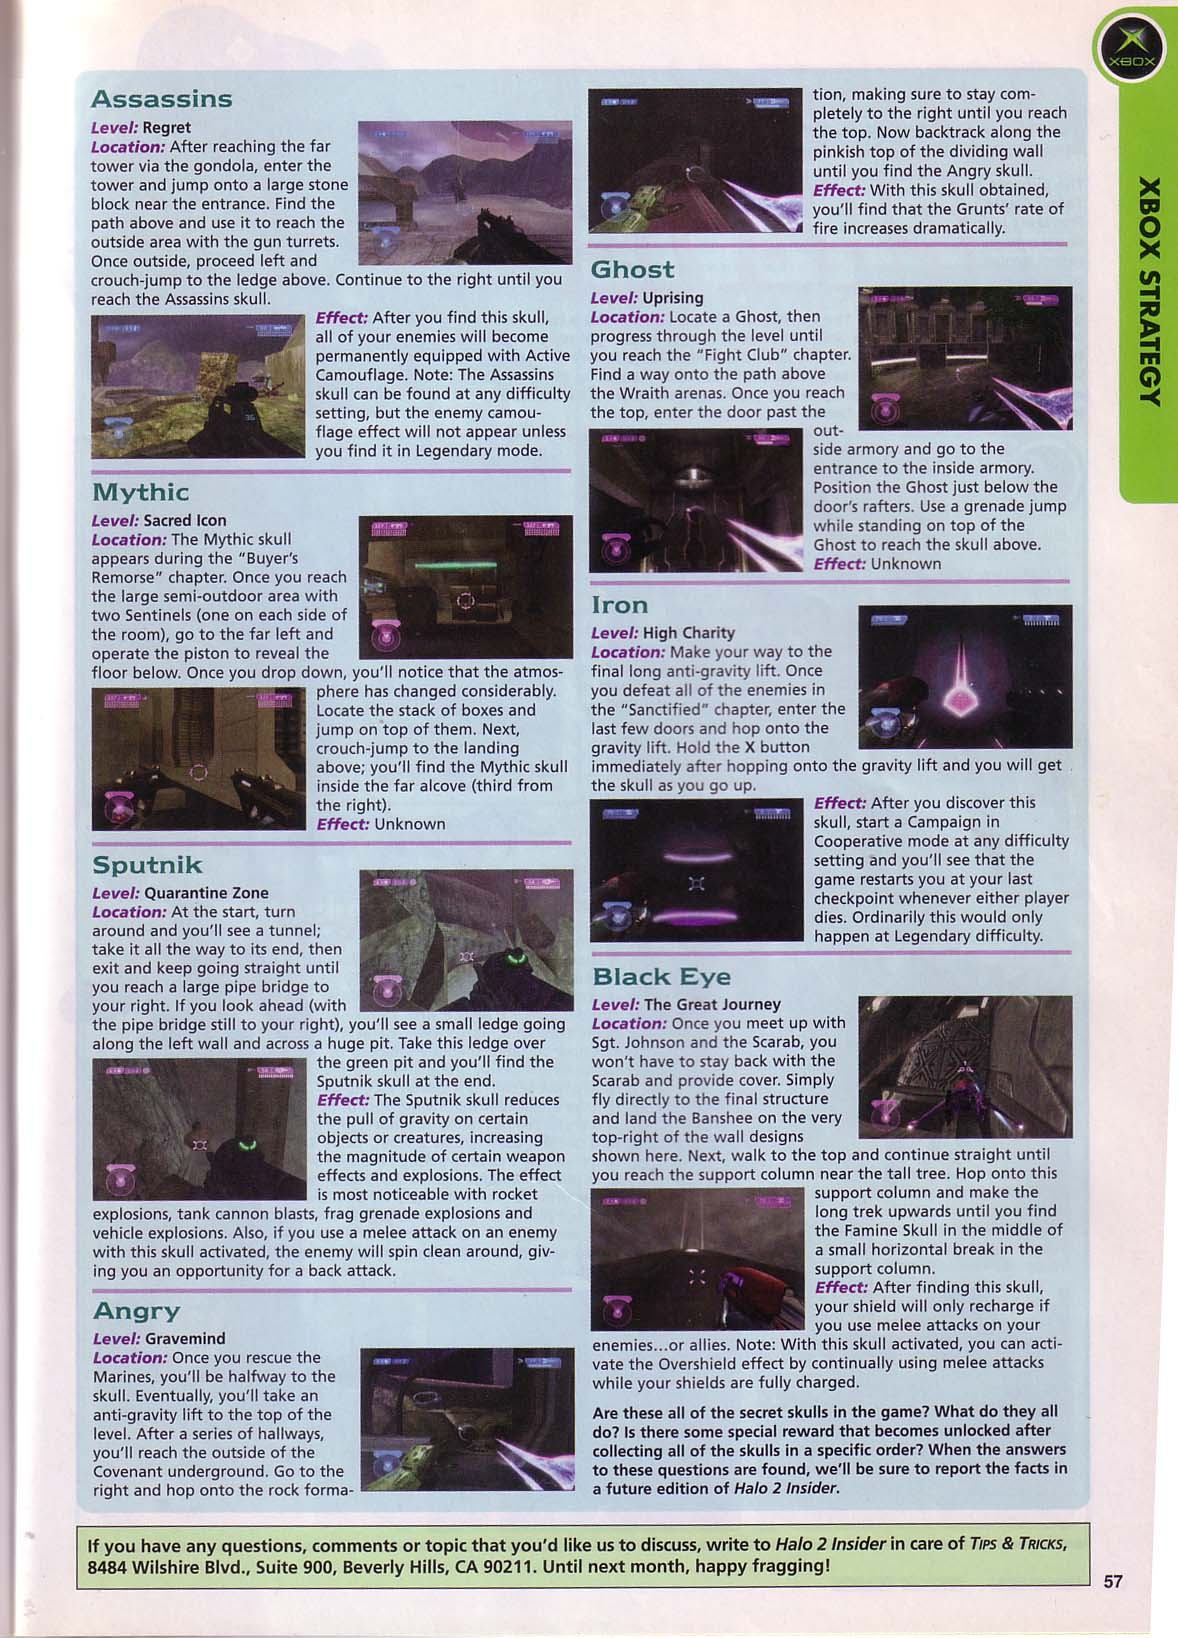 TipsandTricks_March_2005_Halo_pg3_Strategy.jpg